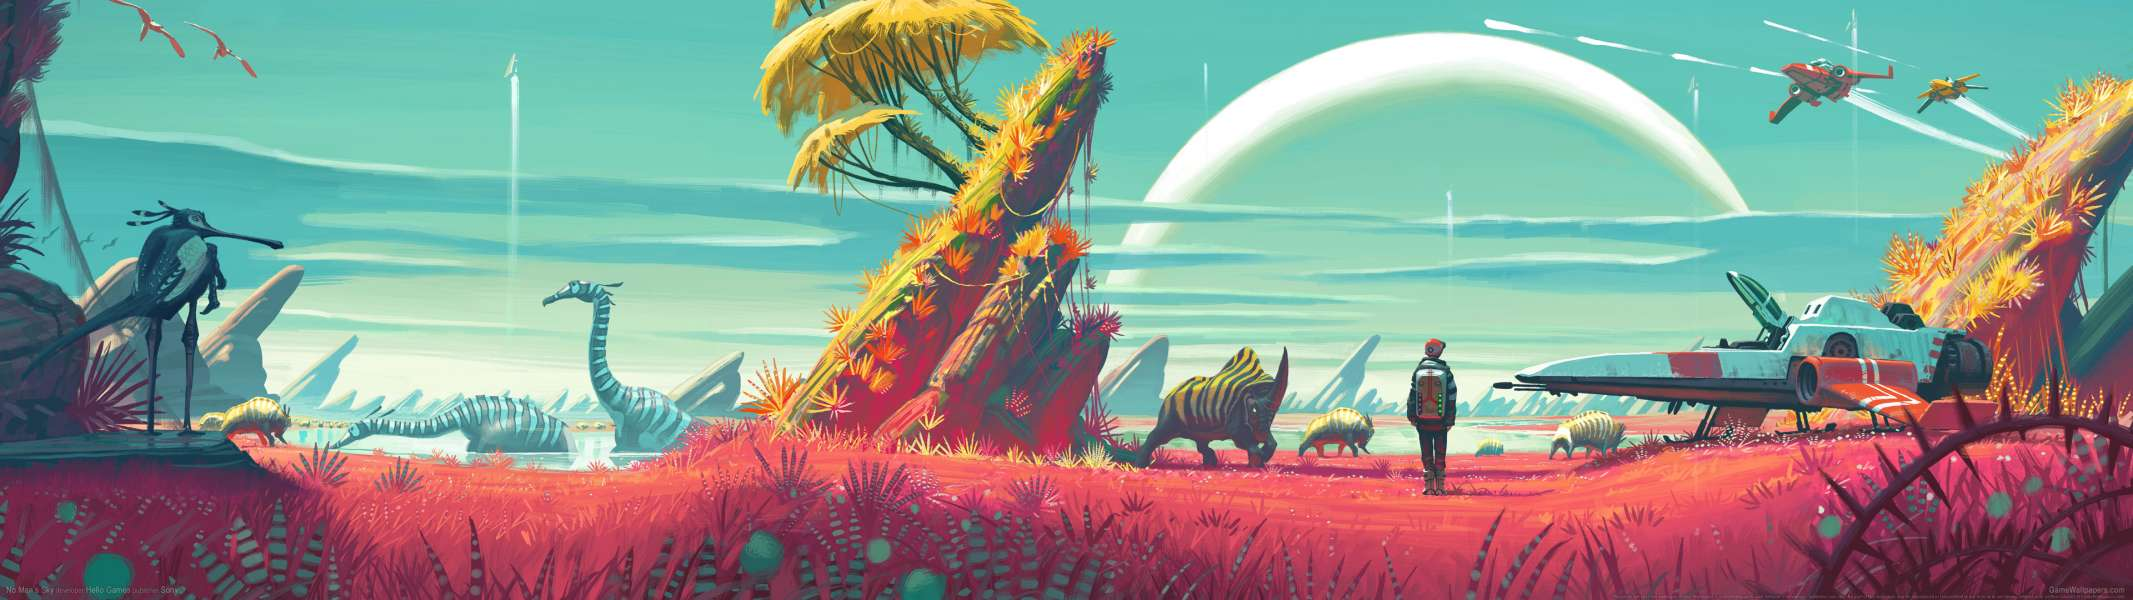 No Man's Sky dual screen wallpaper or background